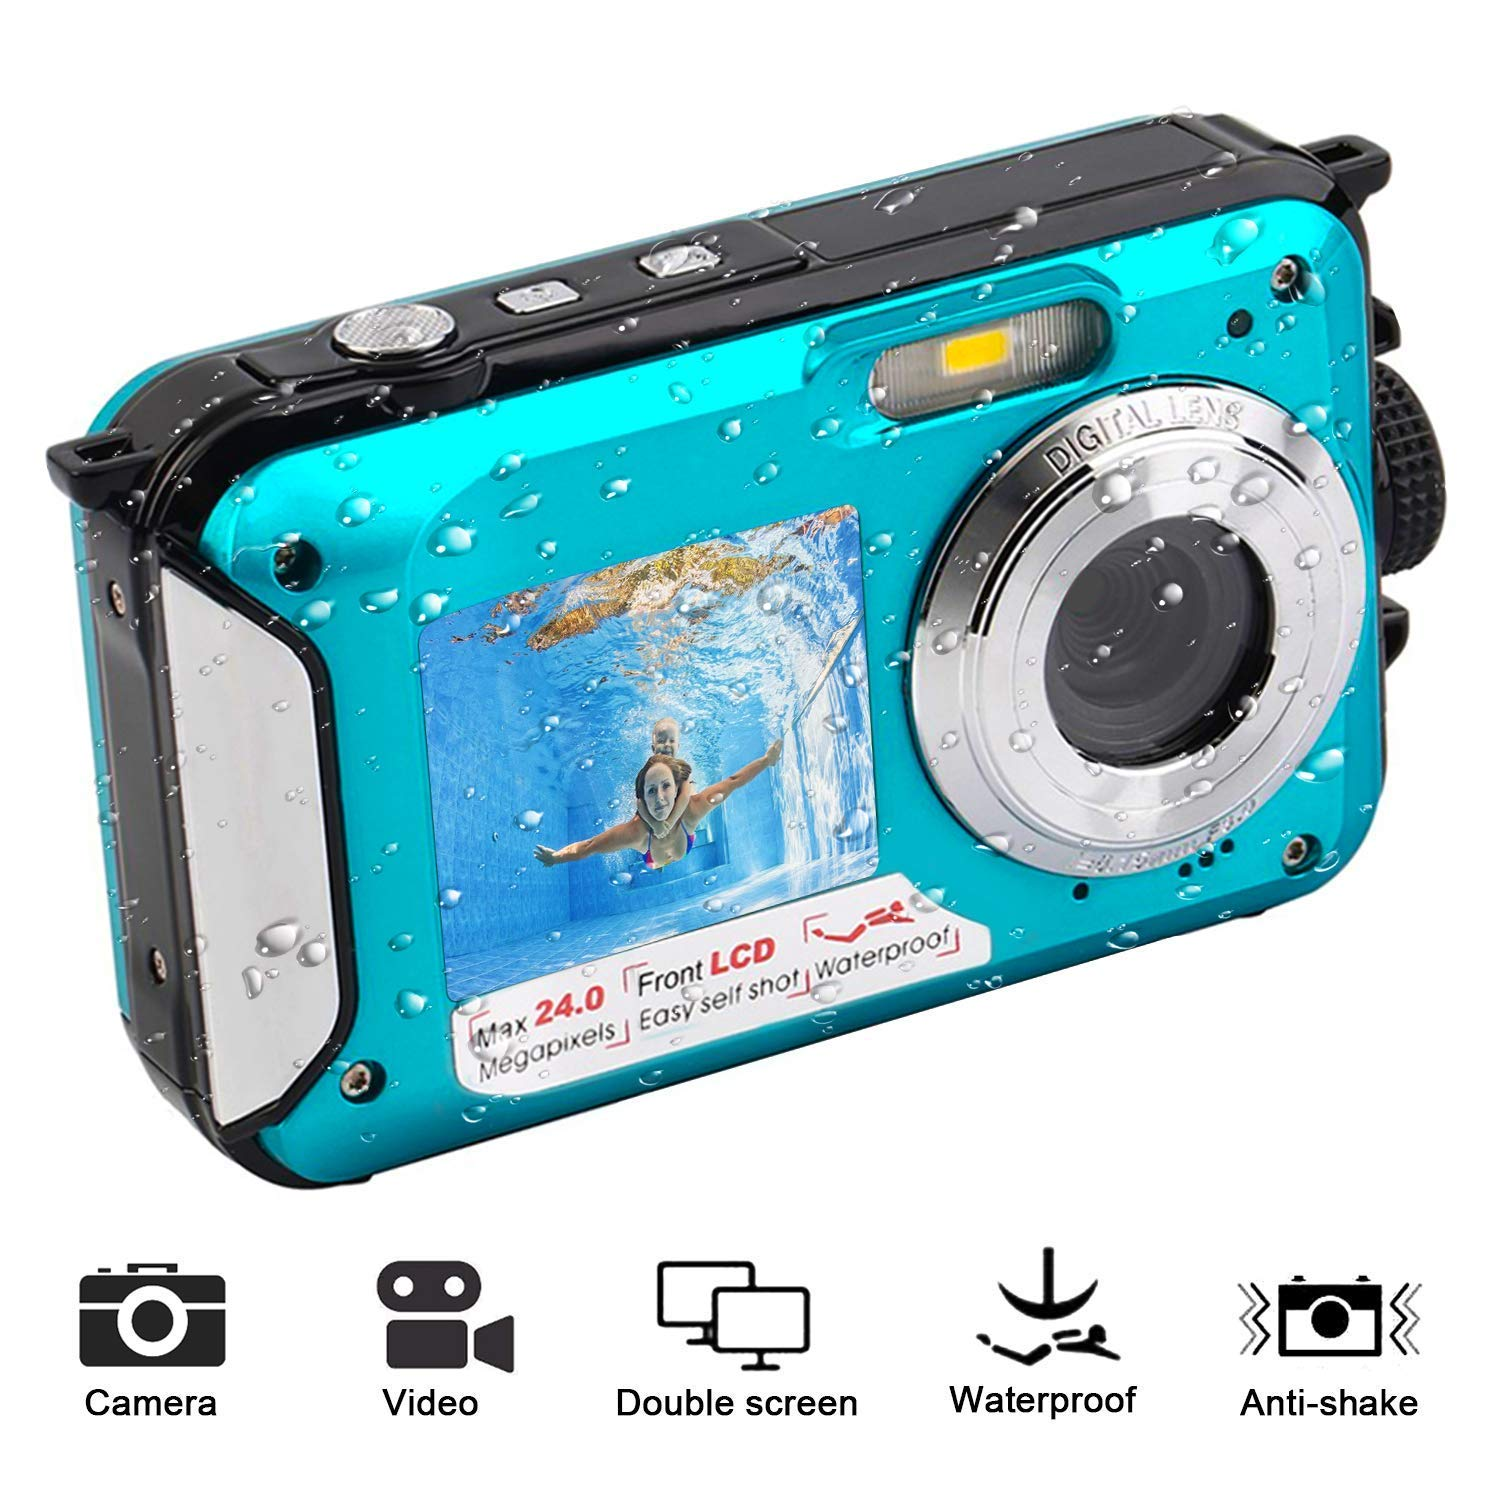 Cámara de Video subacuática 1080P FHD 24 MP Videocámara Impermeable Cámara Dual Impermeable Acción Digital Cámara Digital